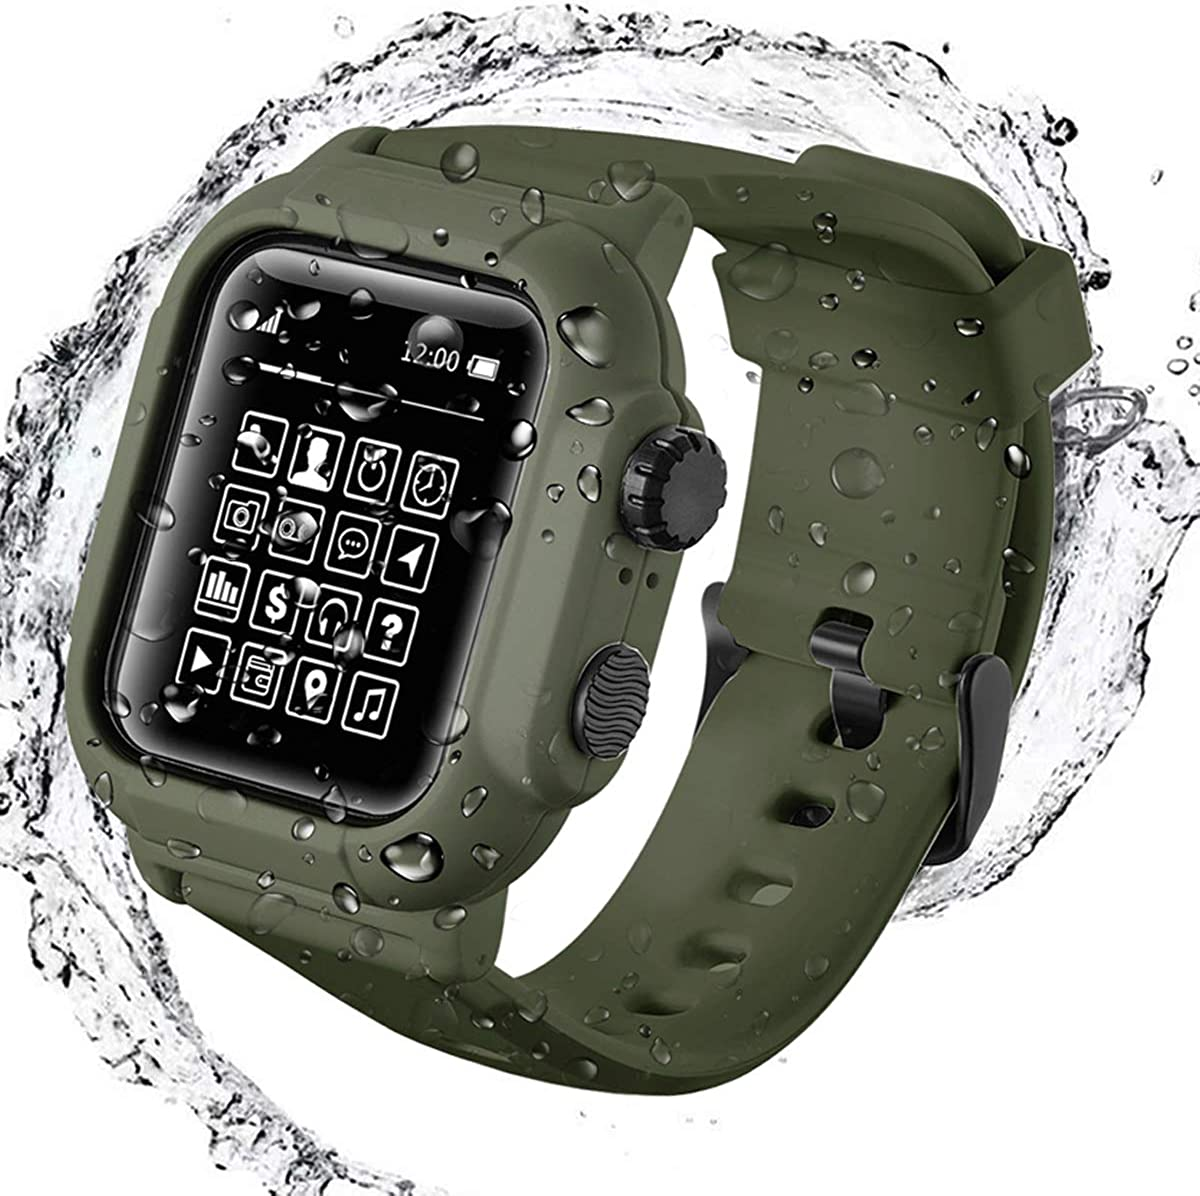 Waterproof Case with Band Compatible for Apple Watch Series 3 2 42mm & Series 4 5 6 SE 44mm, Soft Silicone Band Loop with Case IP68 Rough Waterproof, Shockproof for iWatch 42mm 44mm Case Band